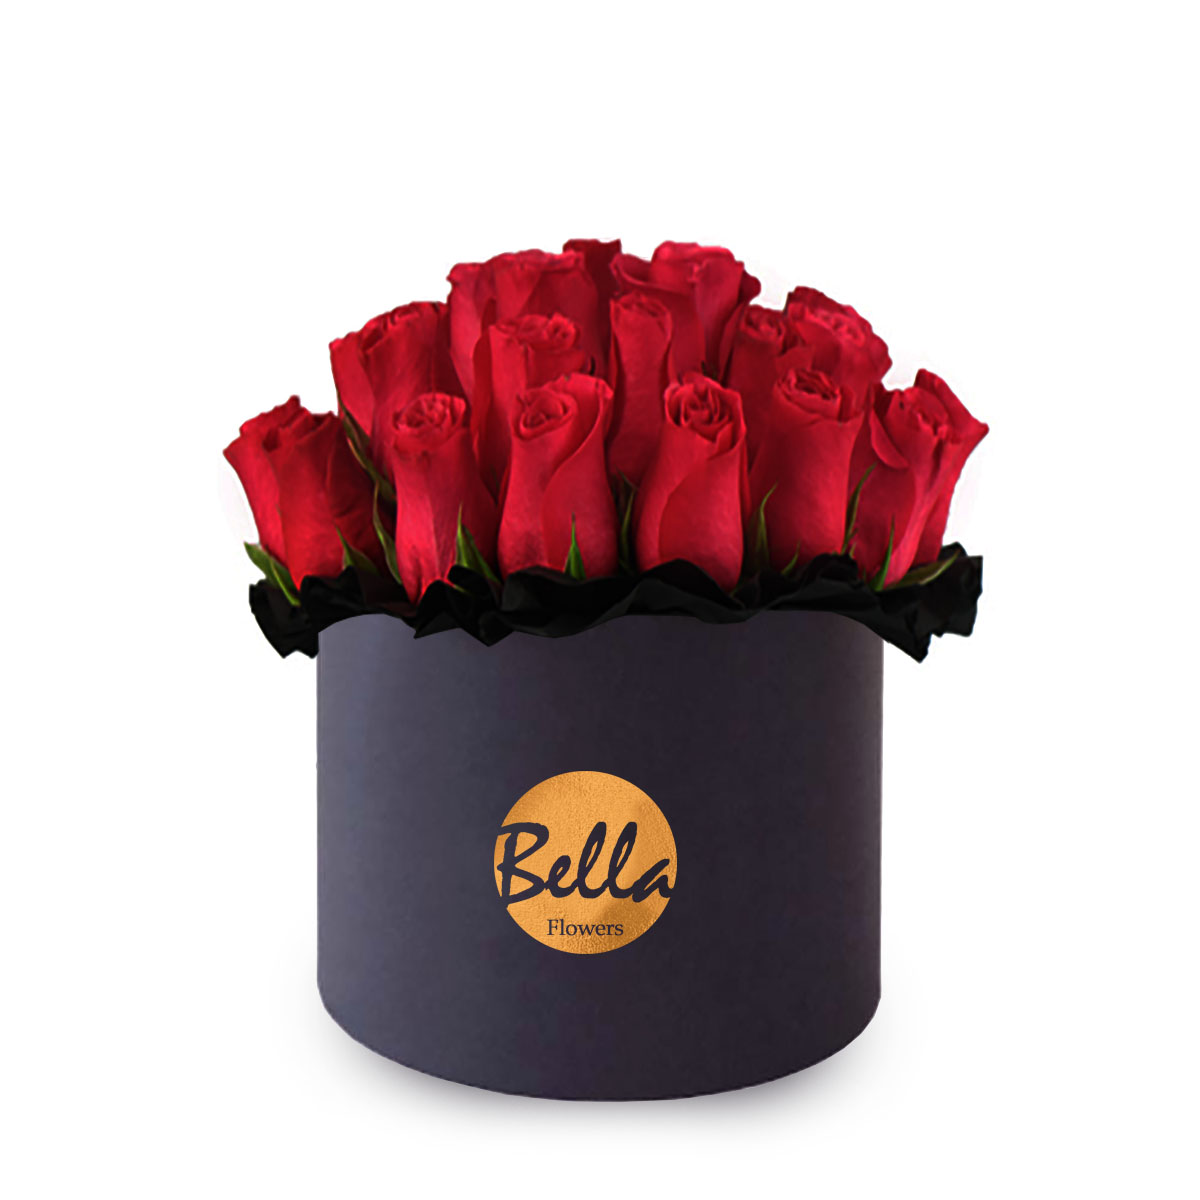 Black flower box with old foil stamp logo